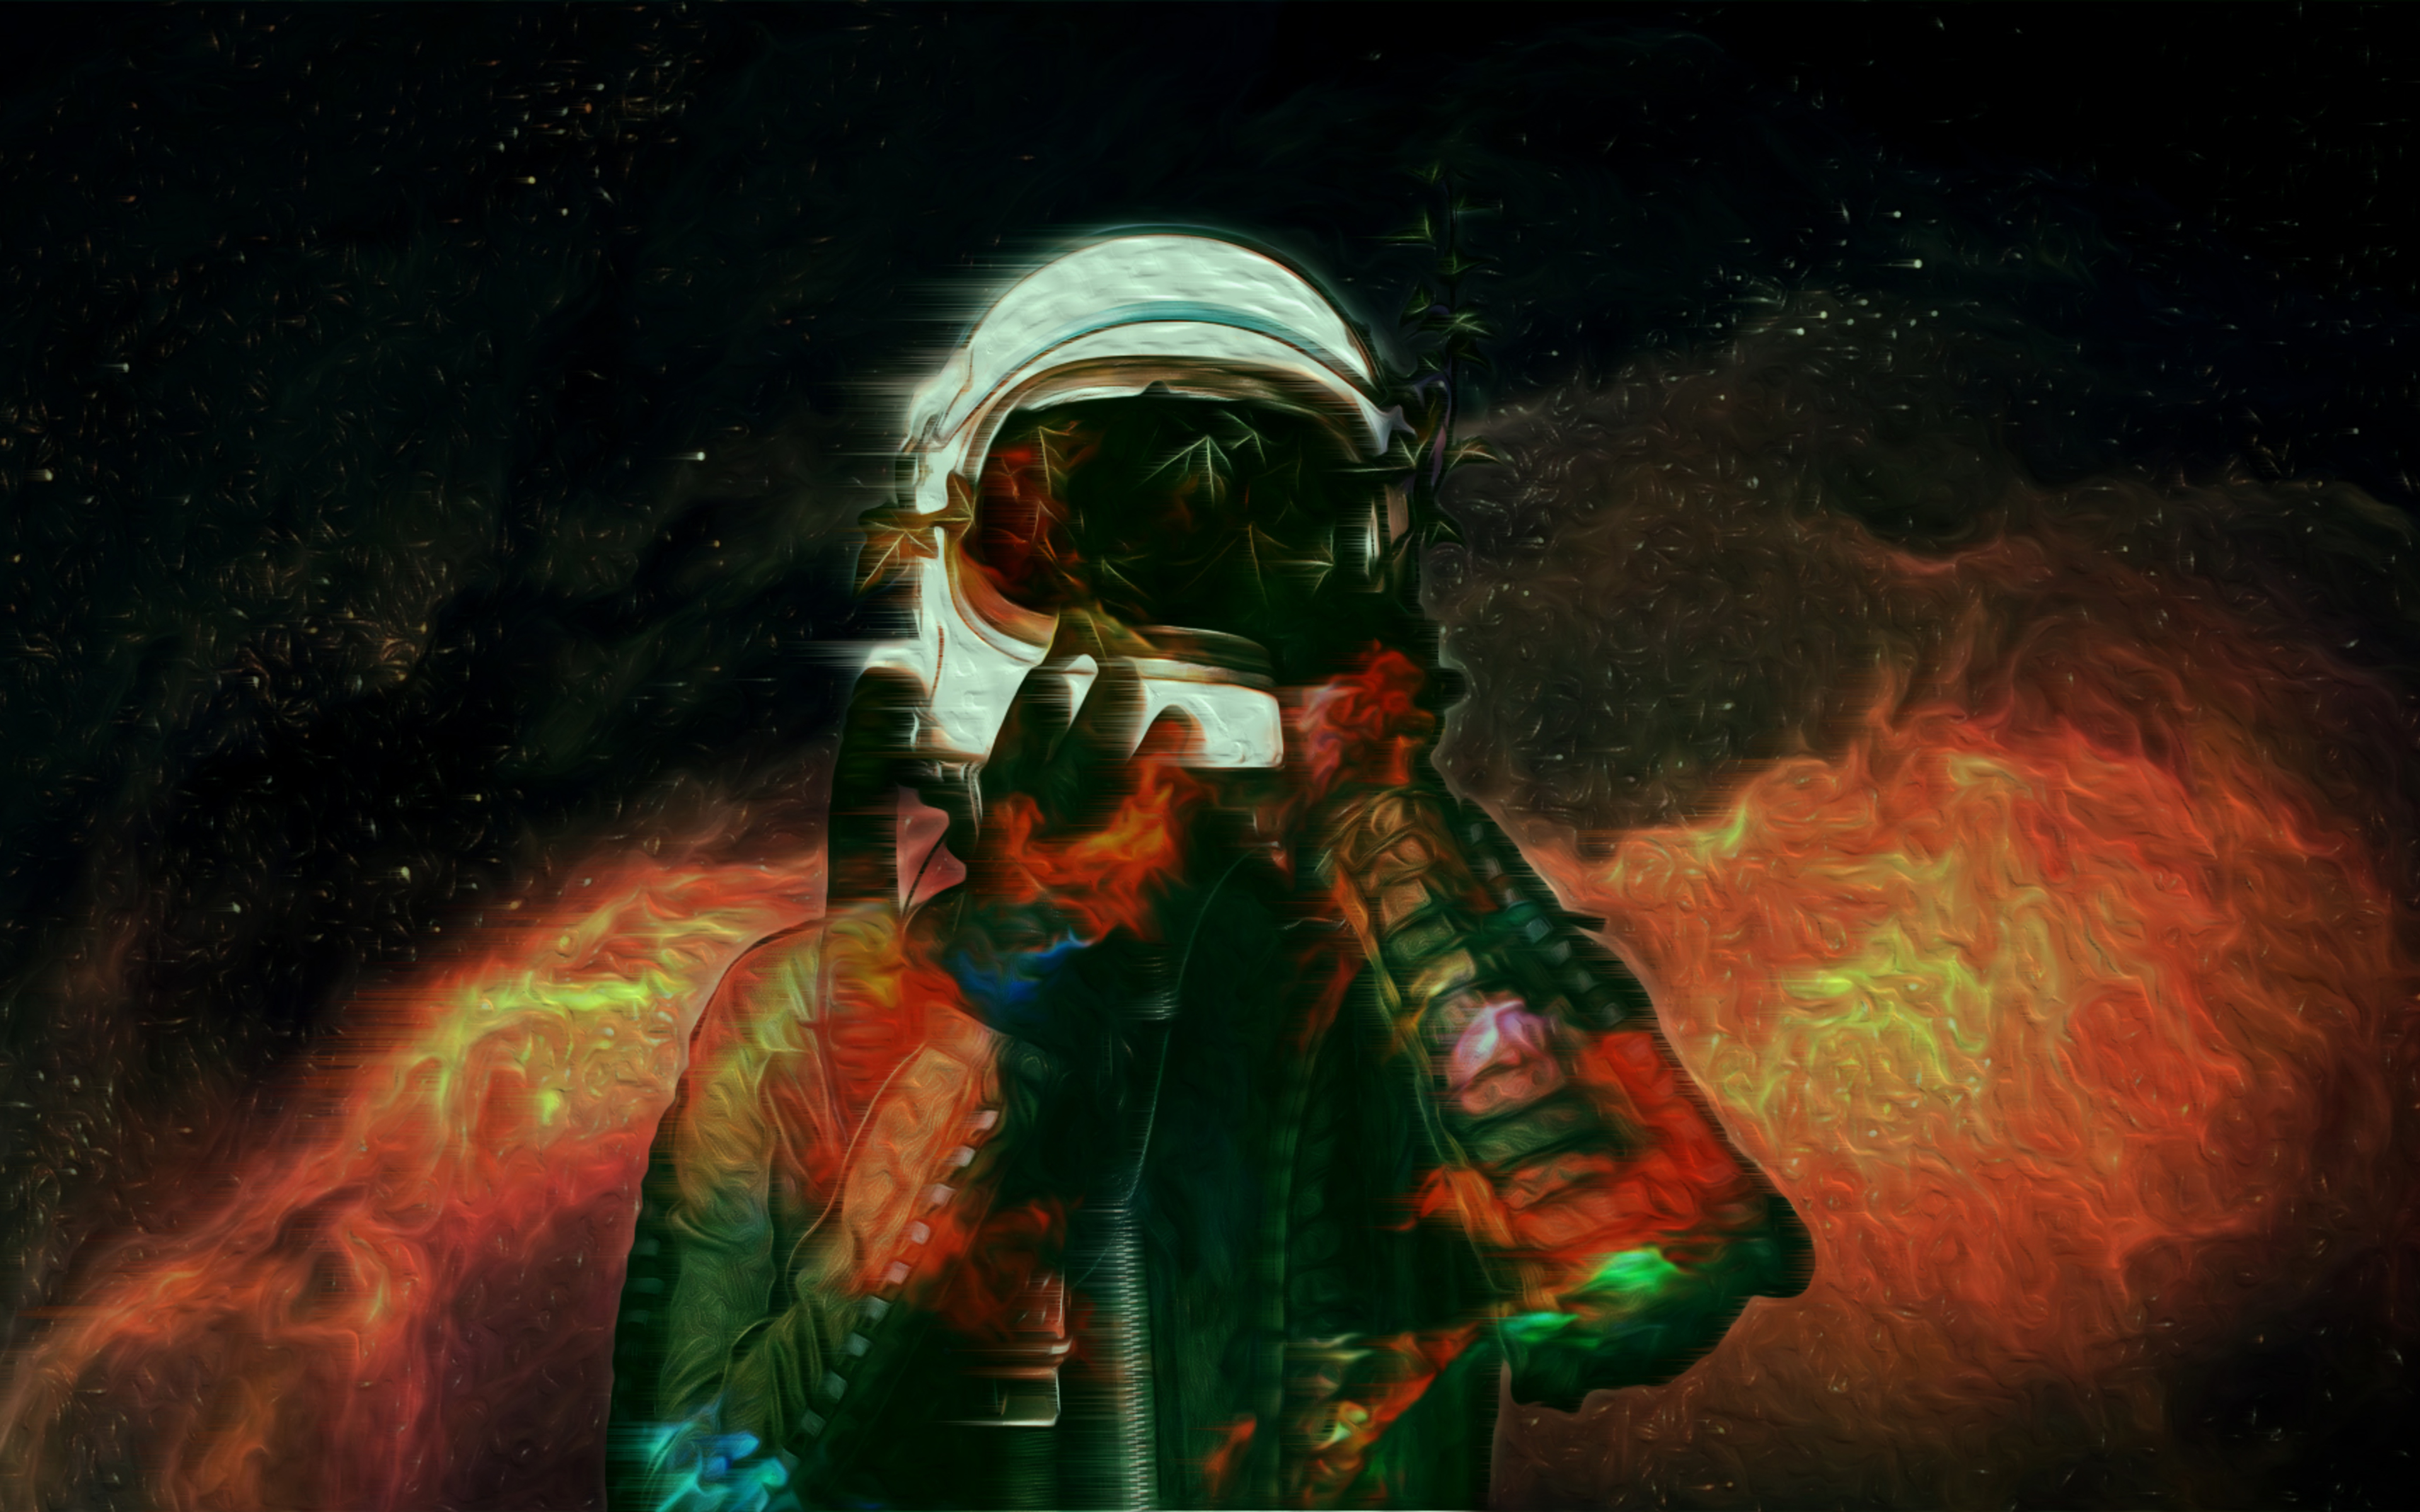 3840x2400 Astronaut Space Abstract 4k HD 4k Wallpapers ...